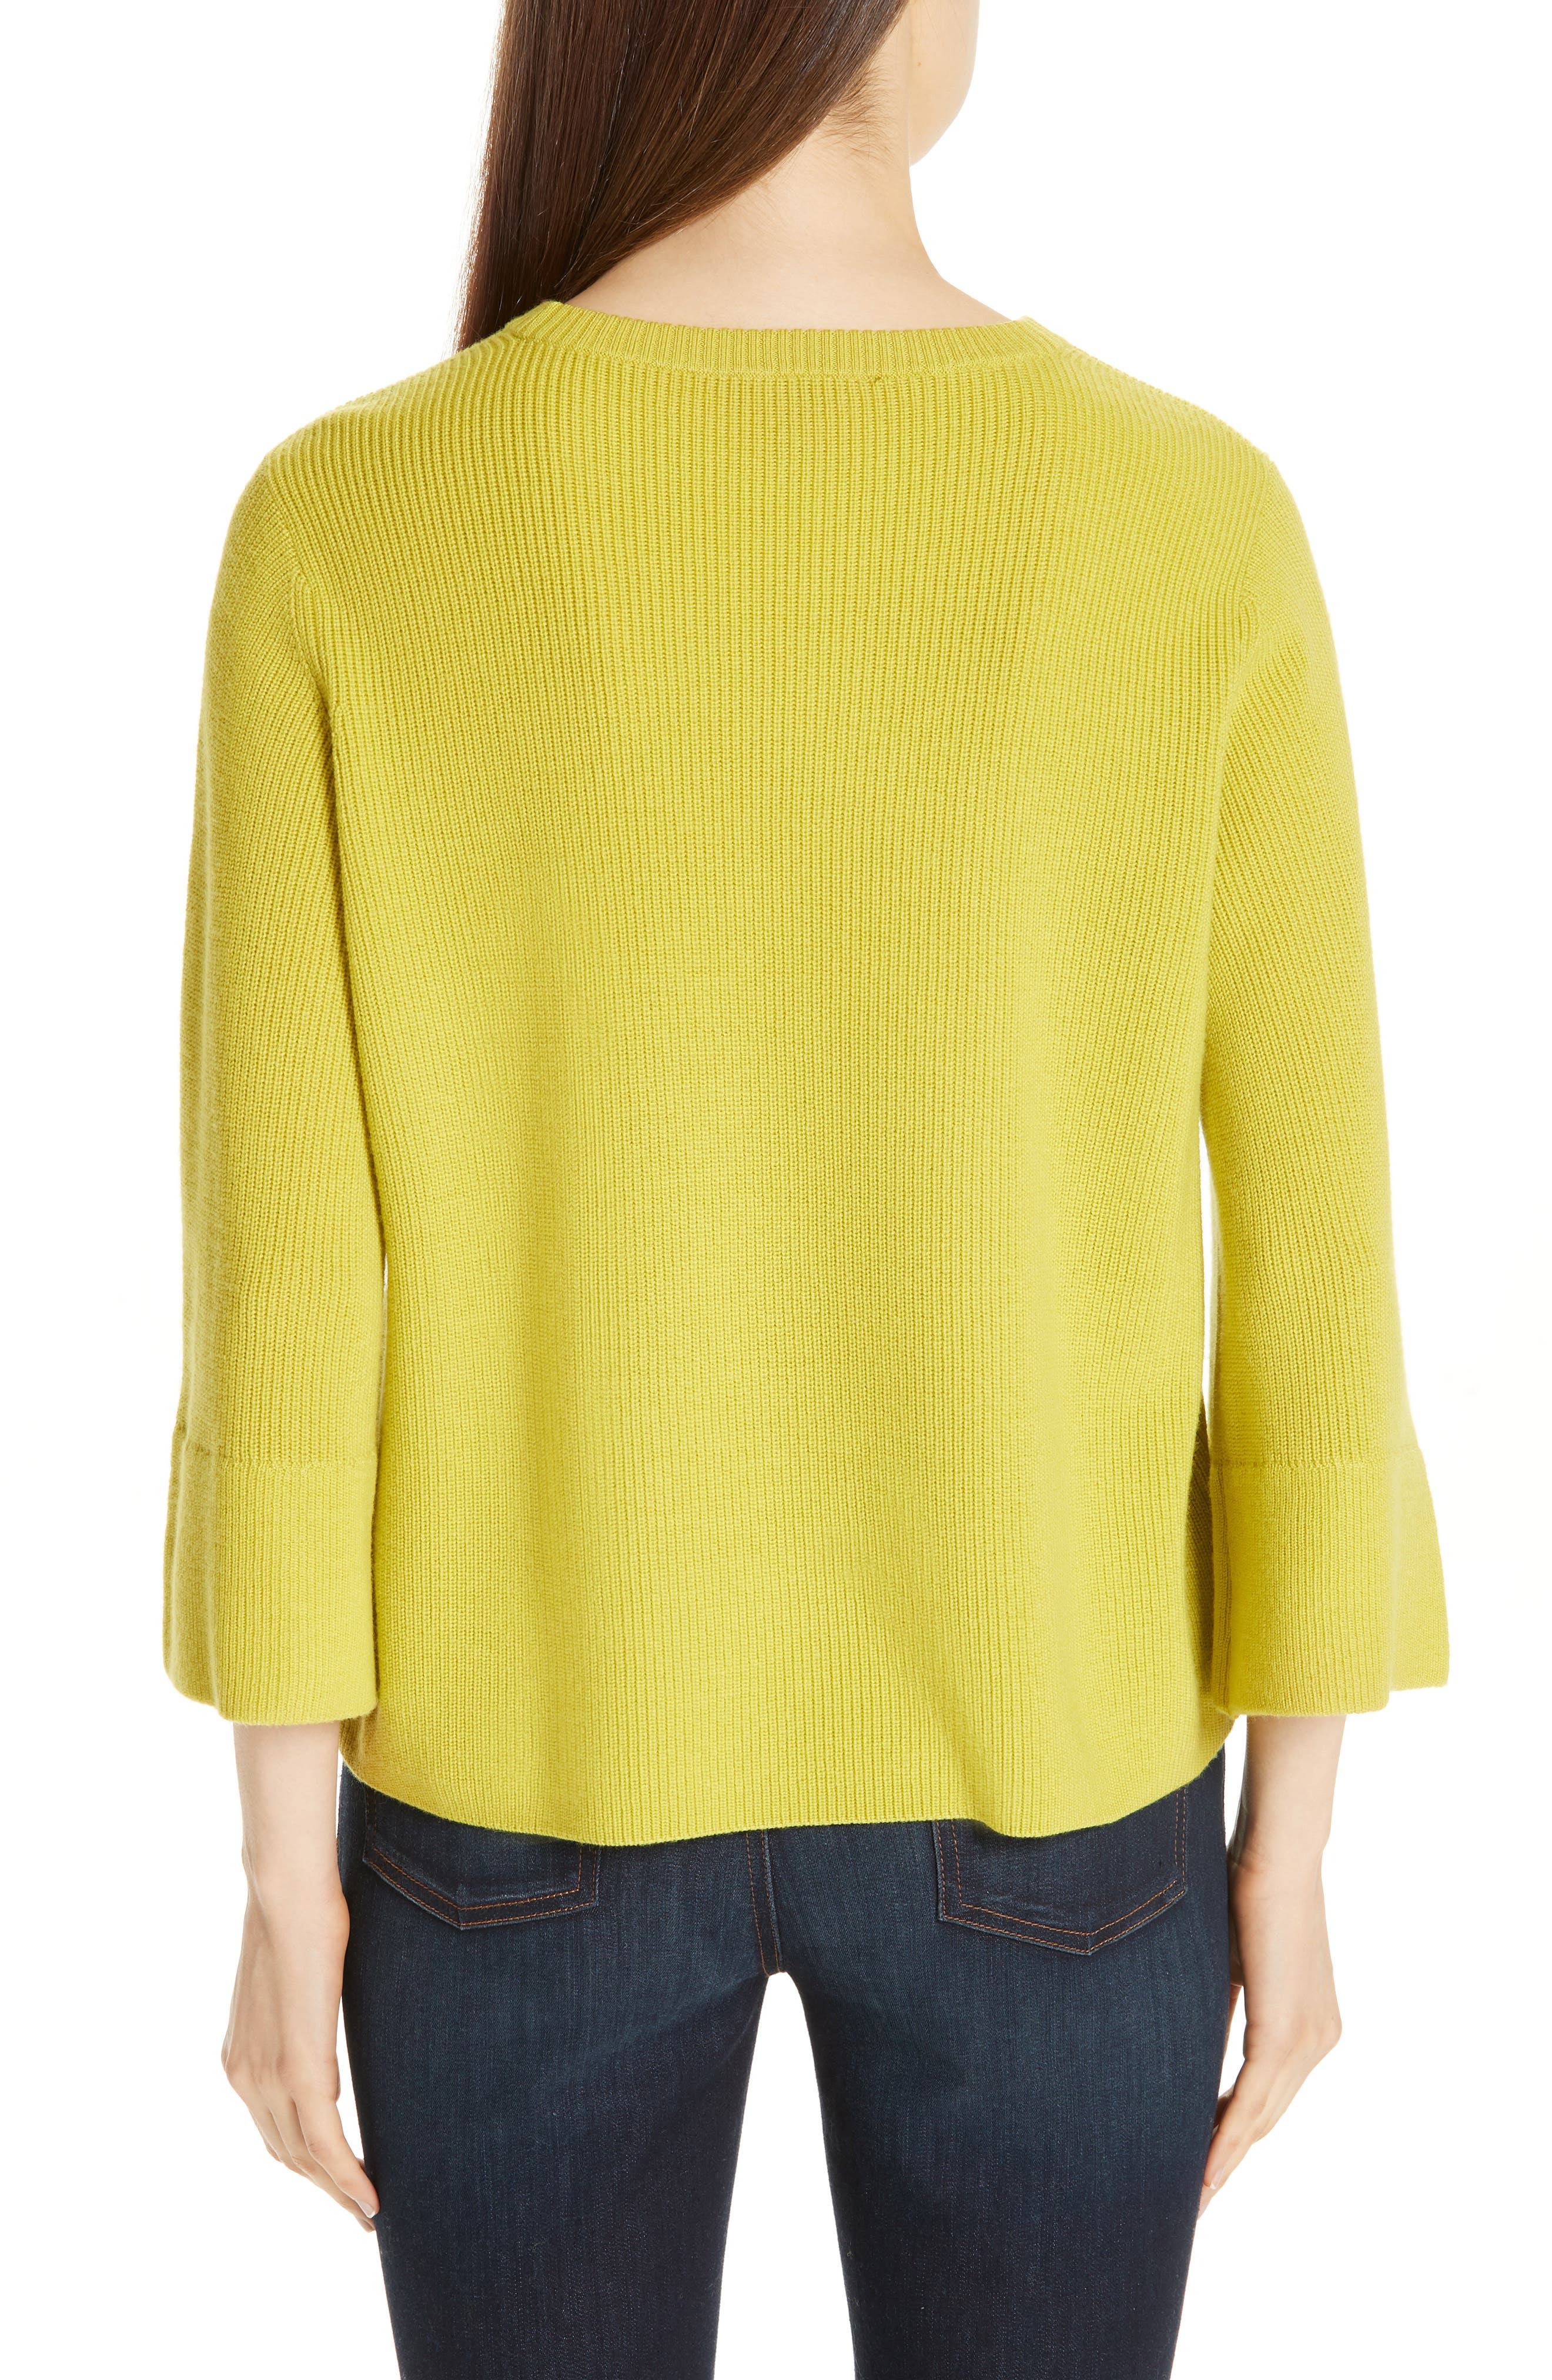 EILEEN FISHER, Three Quarter Sleeve Sweater, Alternate thumbnail 2, color, VERBENA